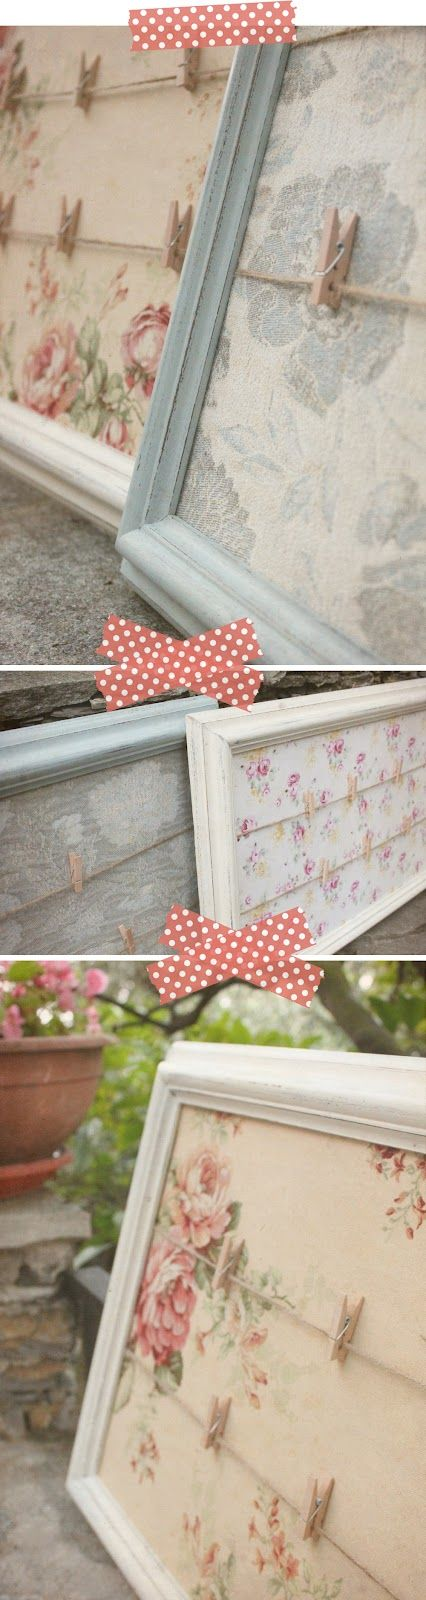 This would be a fun and cute display board to swap out pictures.